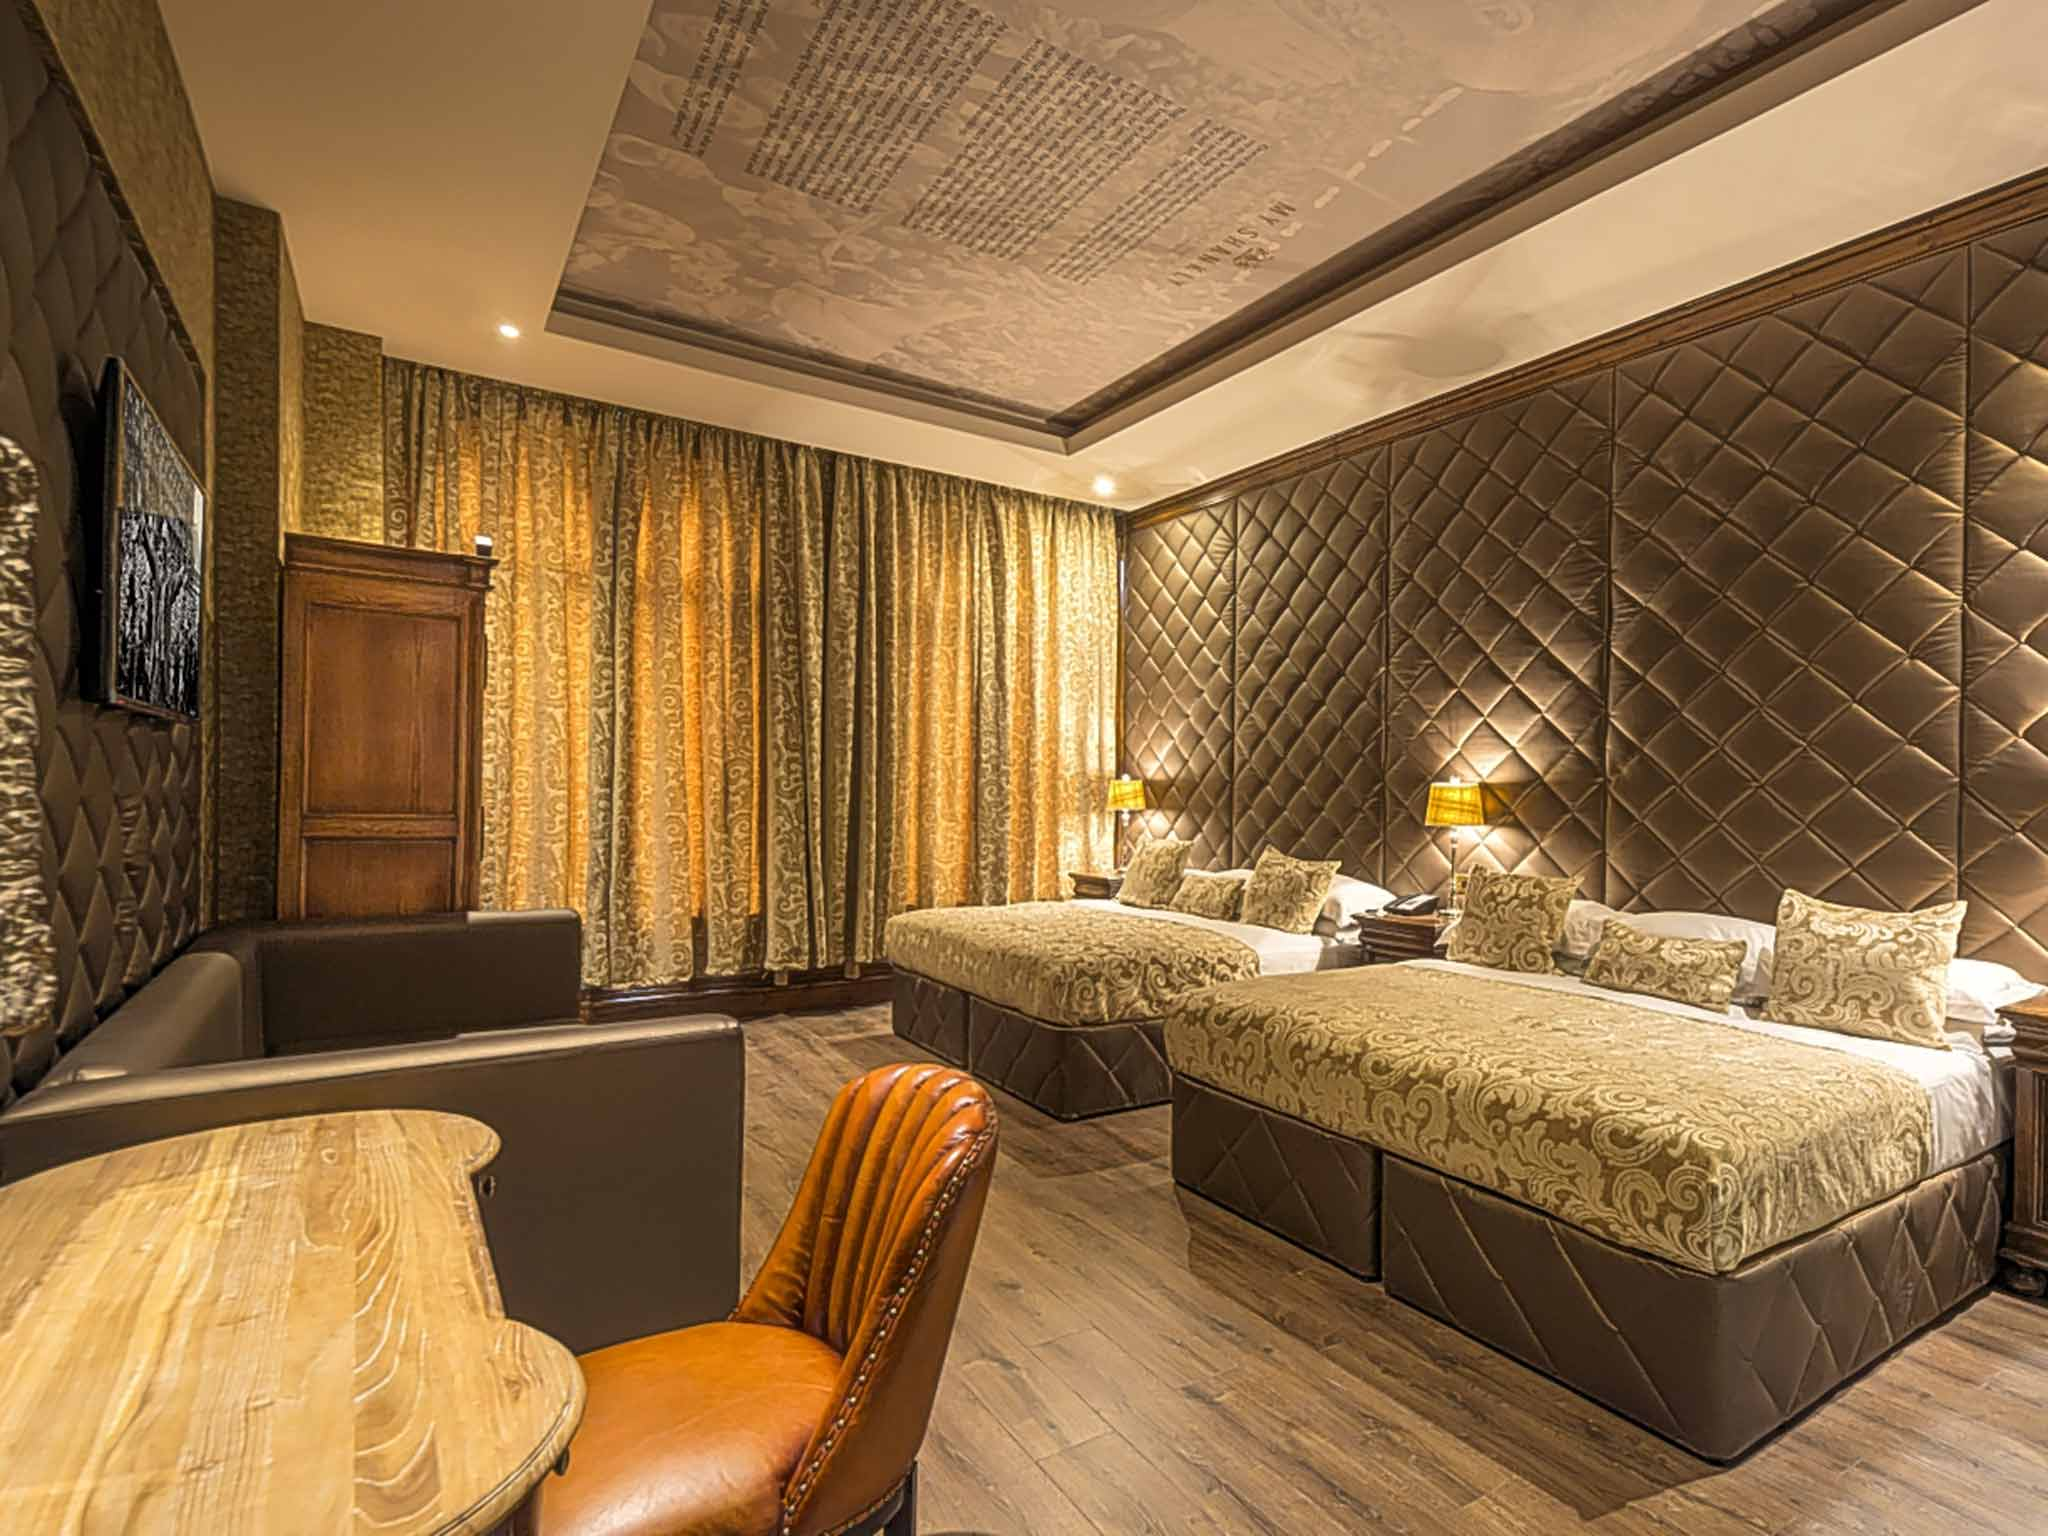 Liverpool Bedroom Wallpaper Hotels For Sports Fans From Football And Rugby To Cricket And